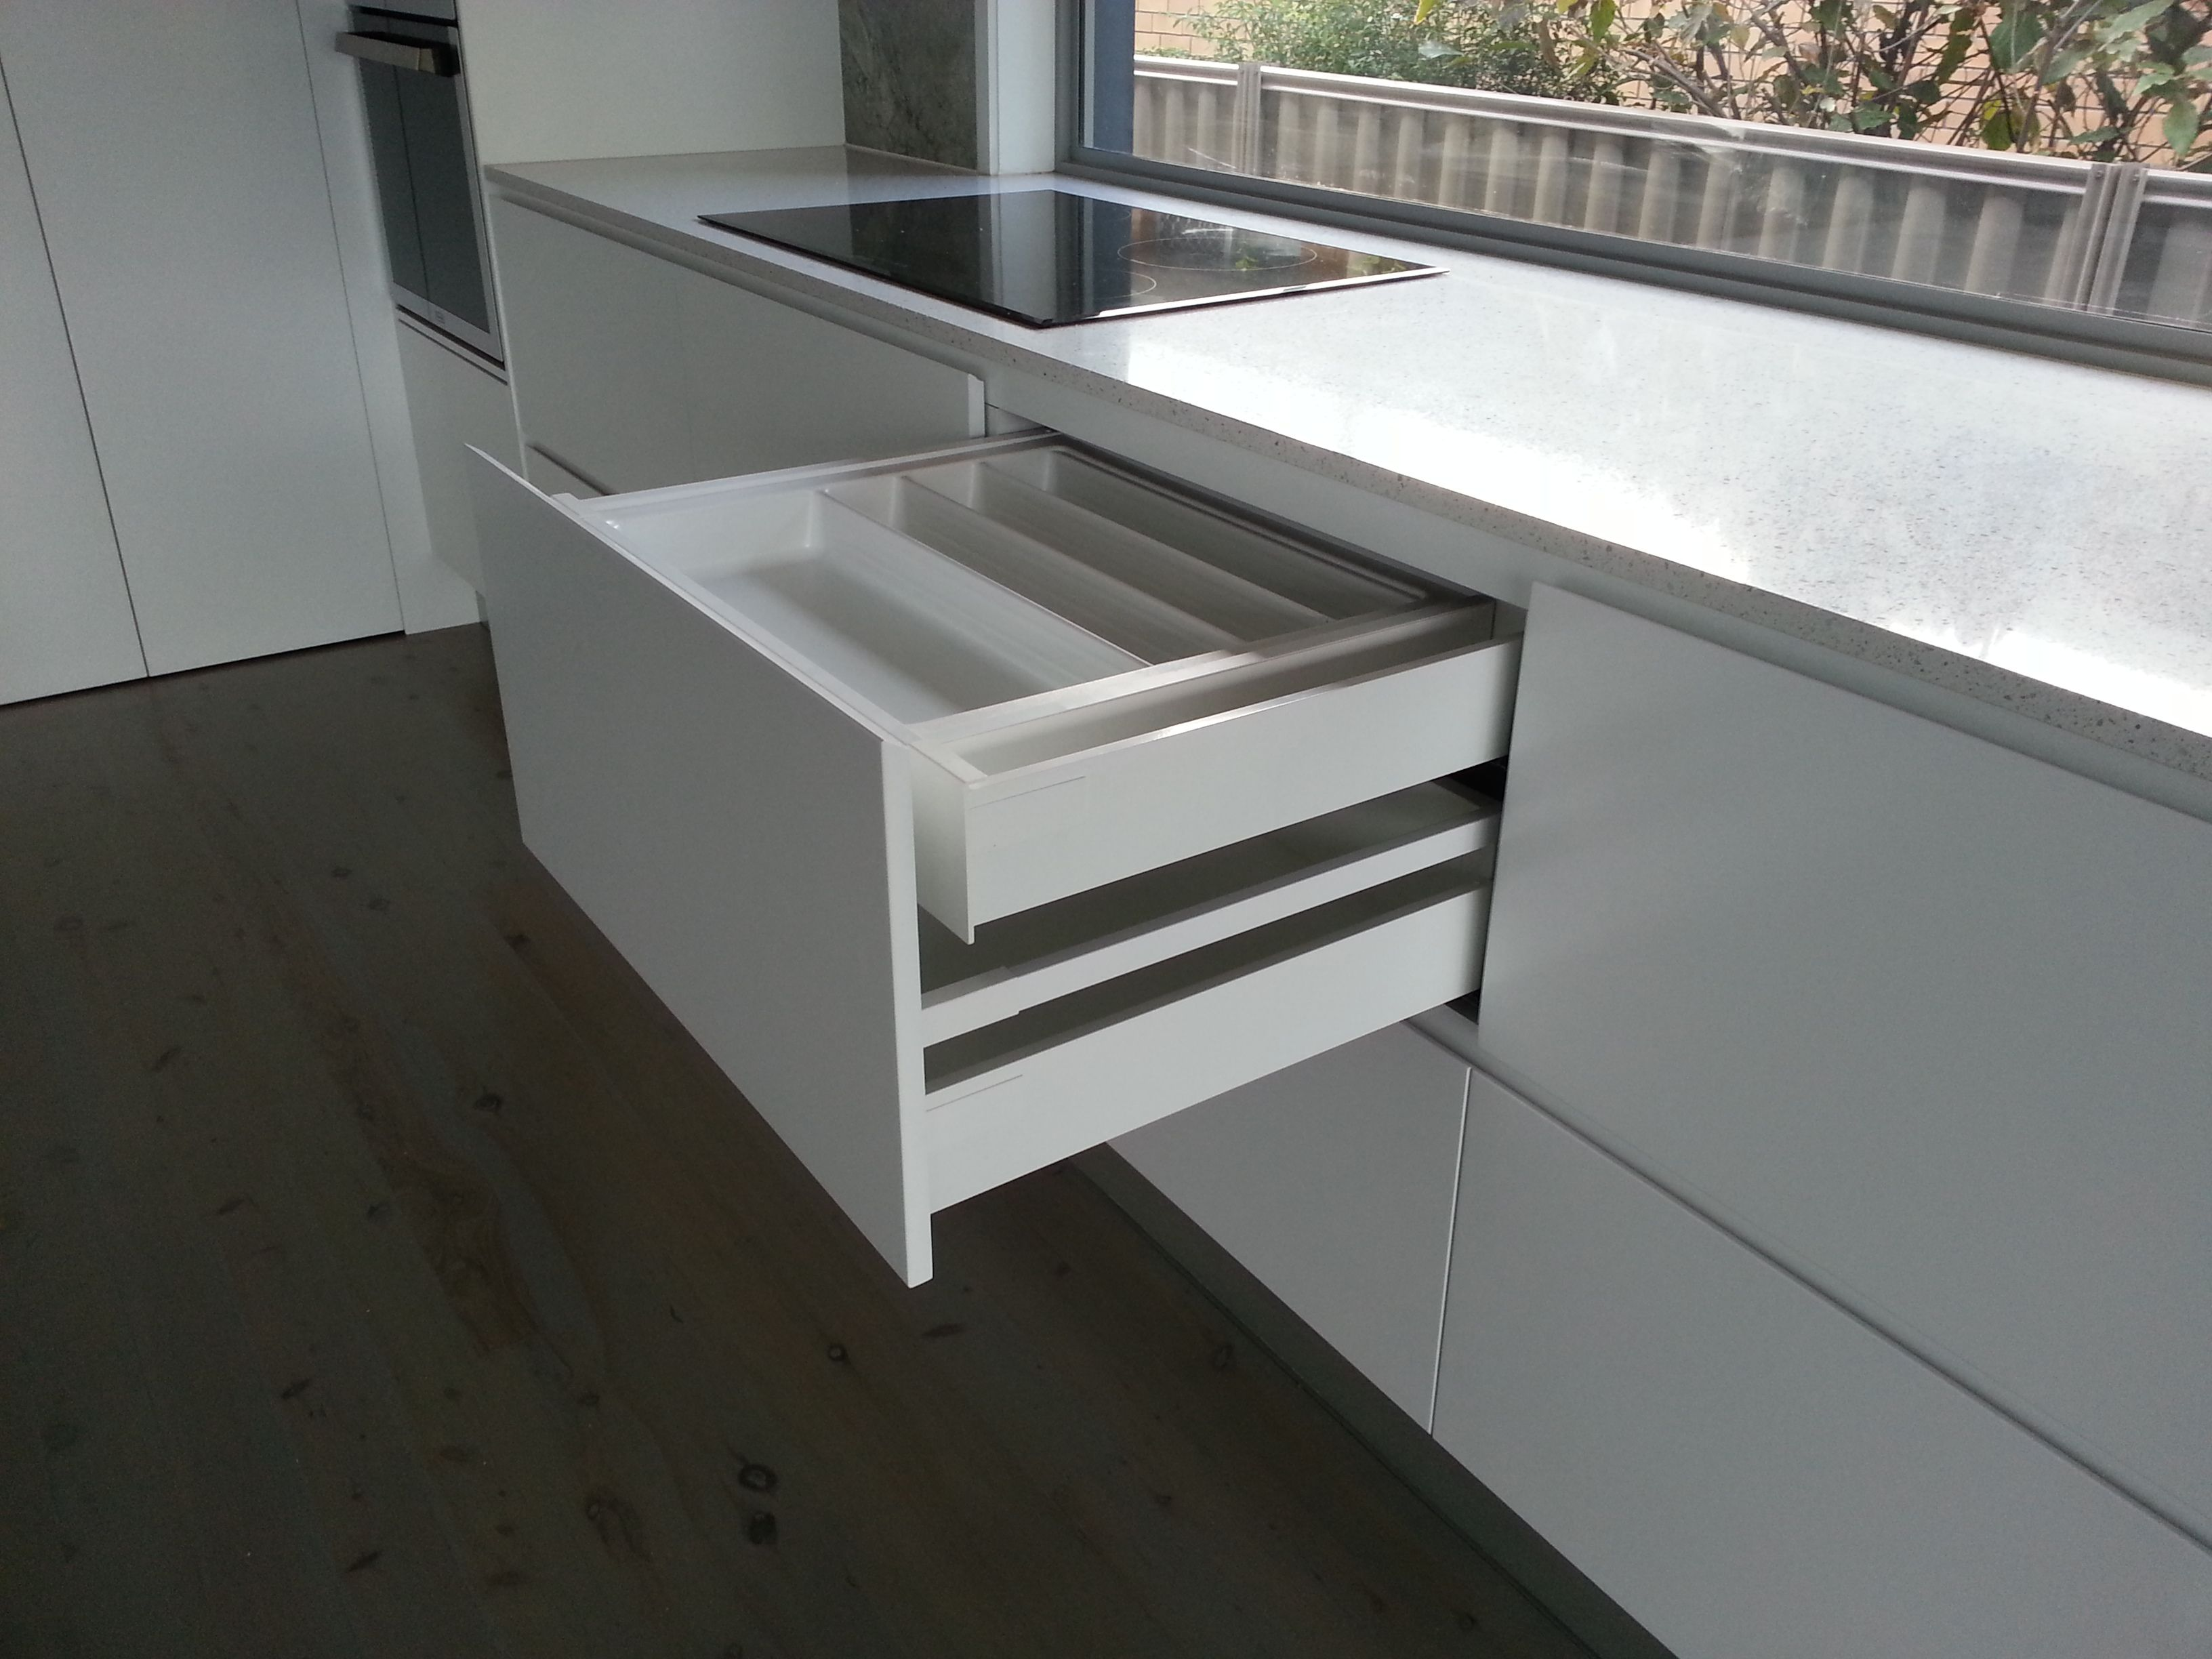 Finger pull drawers. Blum hardware | Kitchen Storage ideas ...